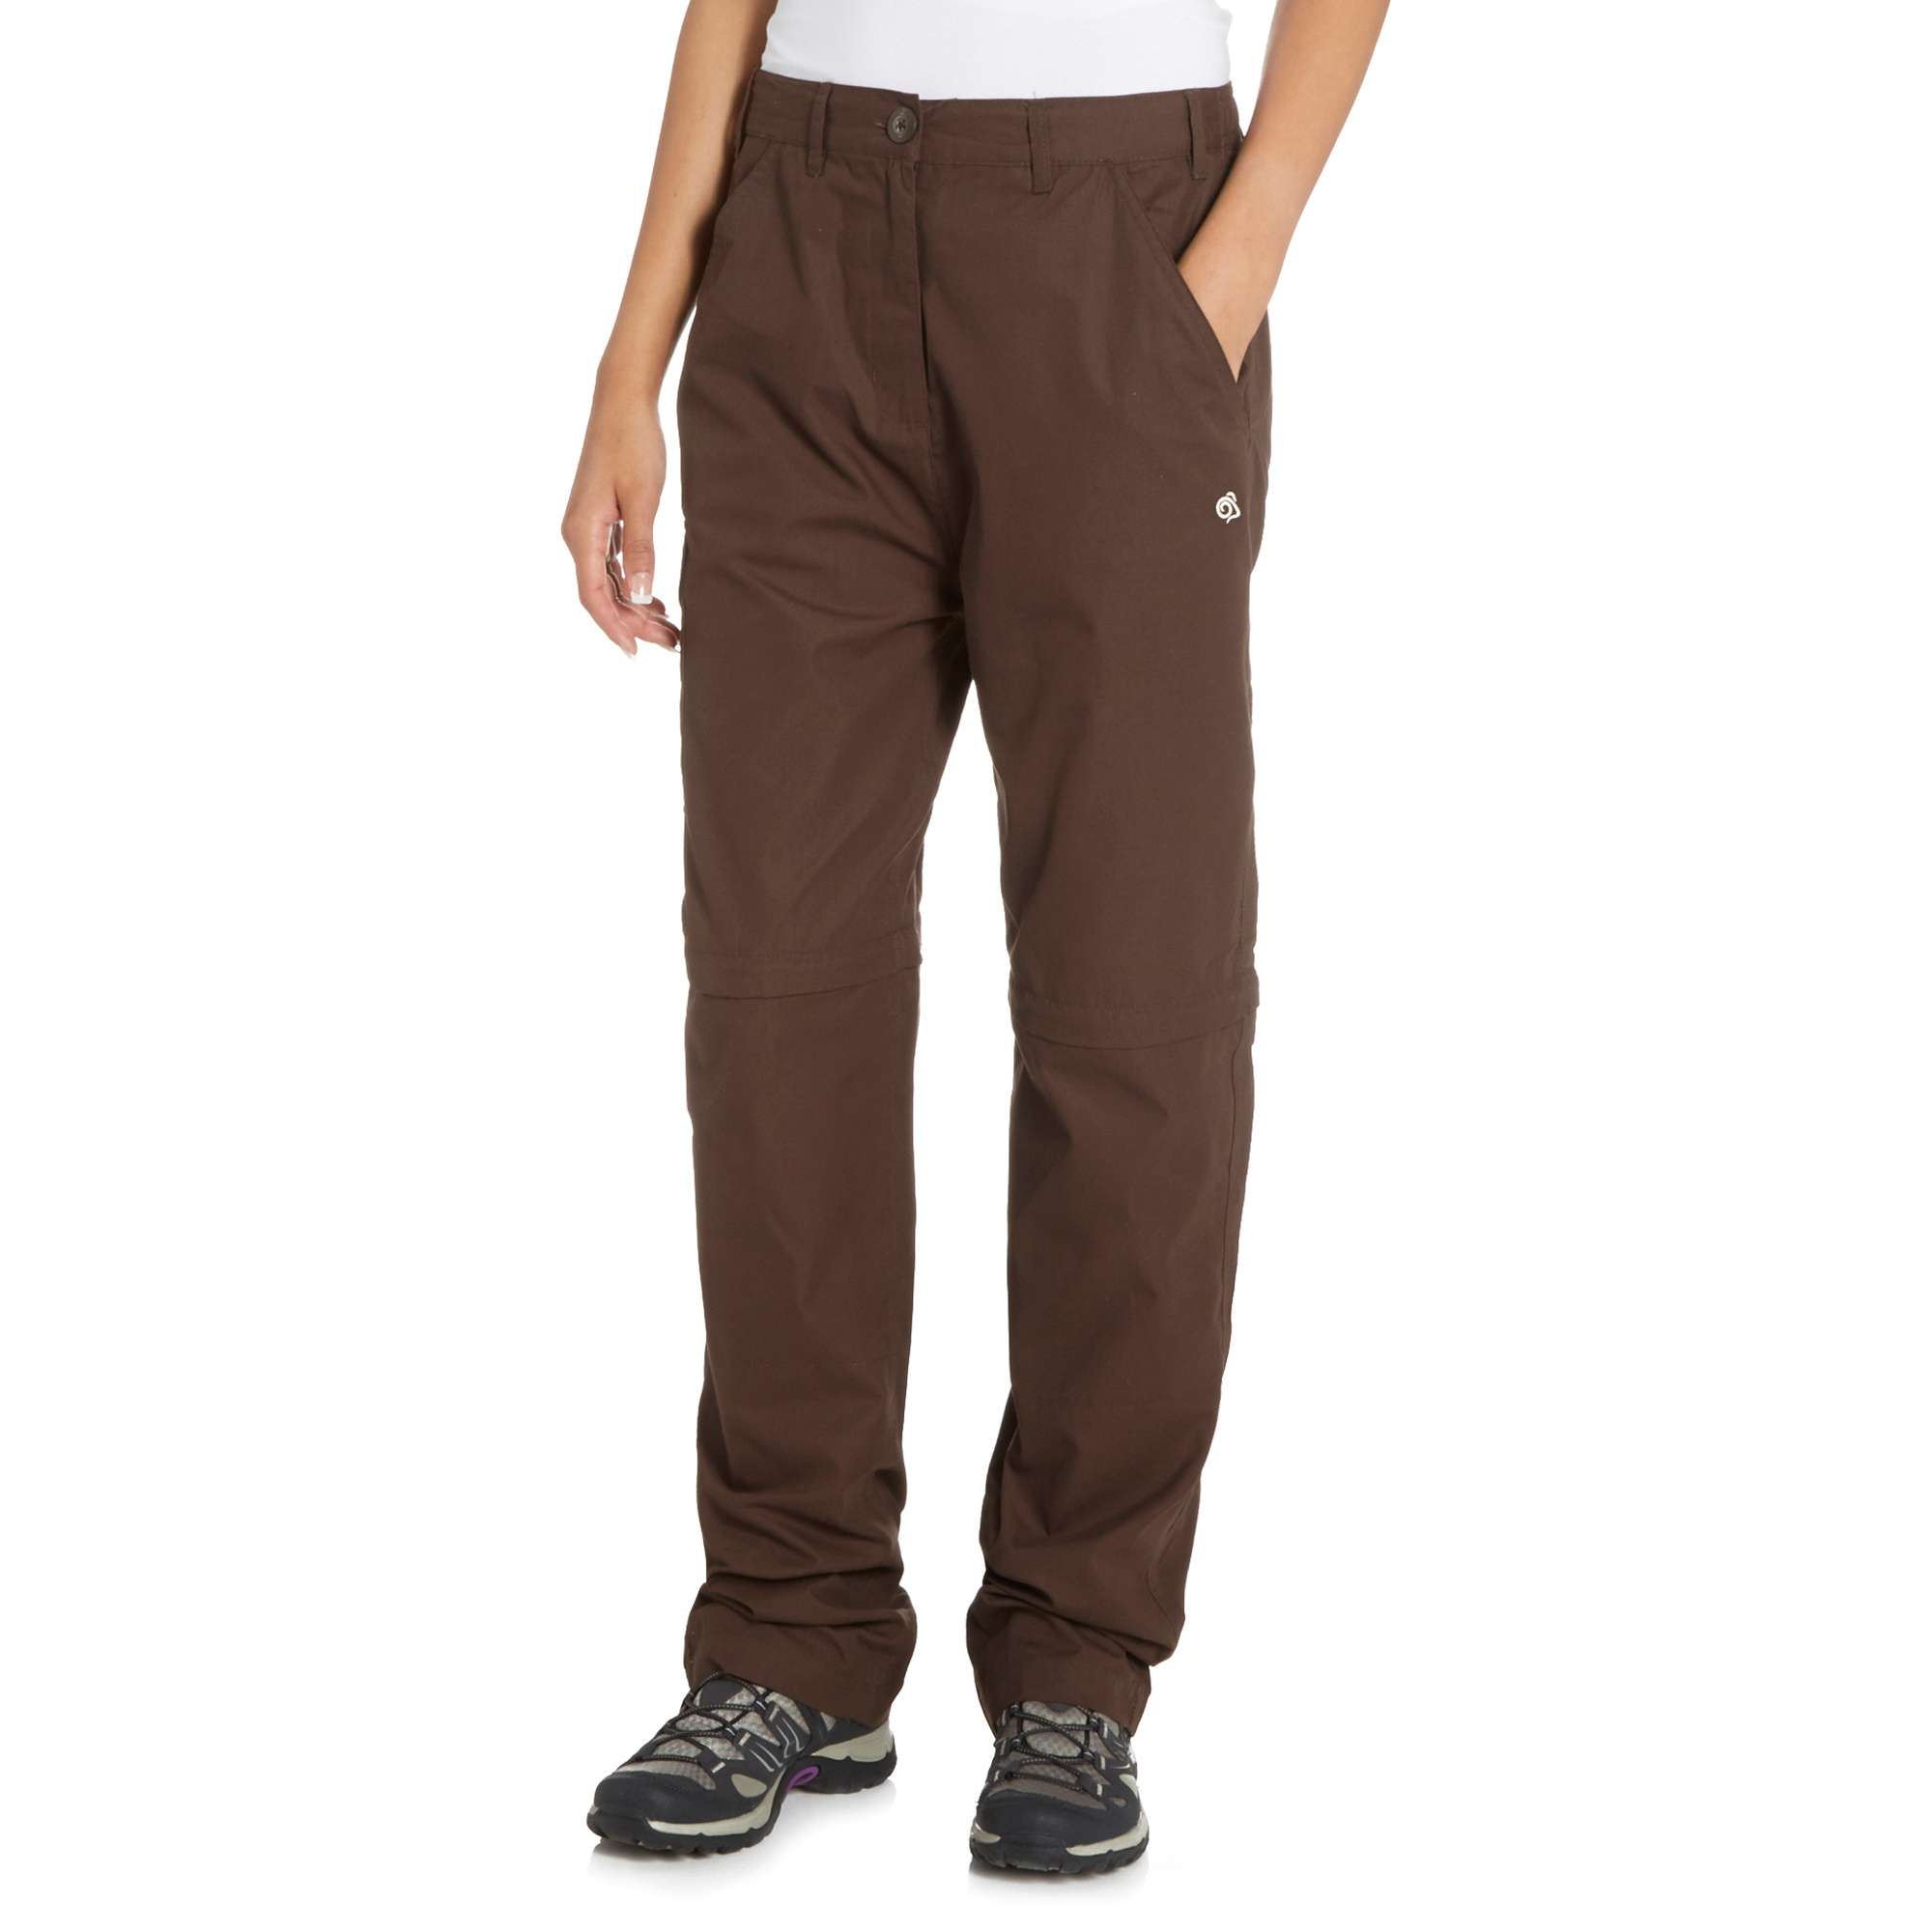 CRAGHOPPERS Women's Basecamp Convertible Trousers